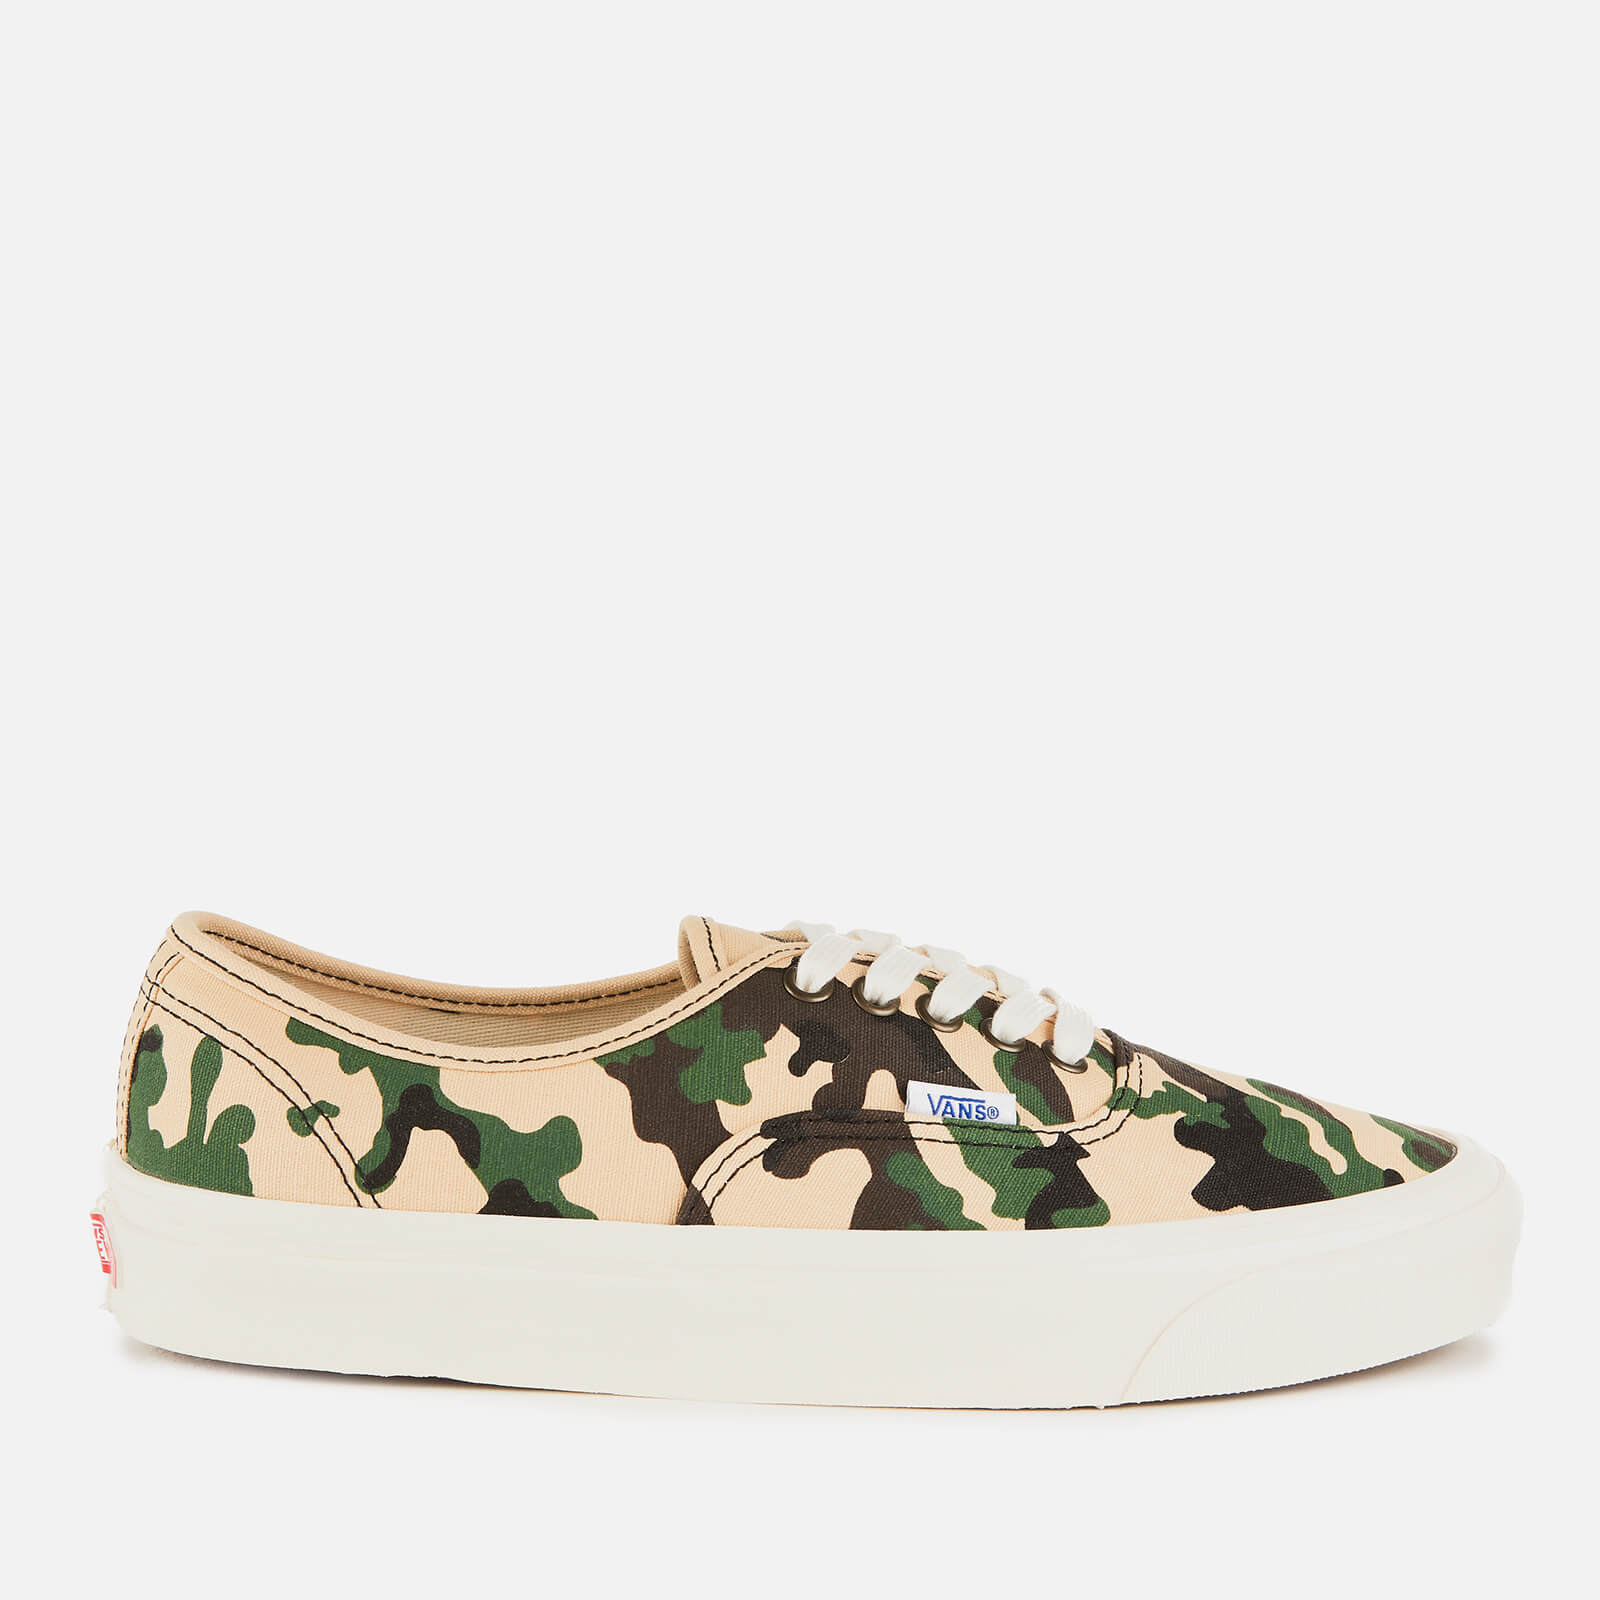 478b09f25d74f Vans Men's Anaheim Authentic 44 DX Trainers - Og Camo - Free UK Delivery  over £50